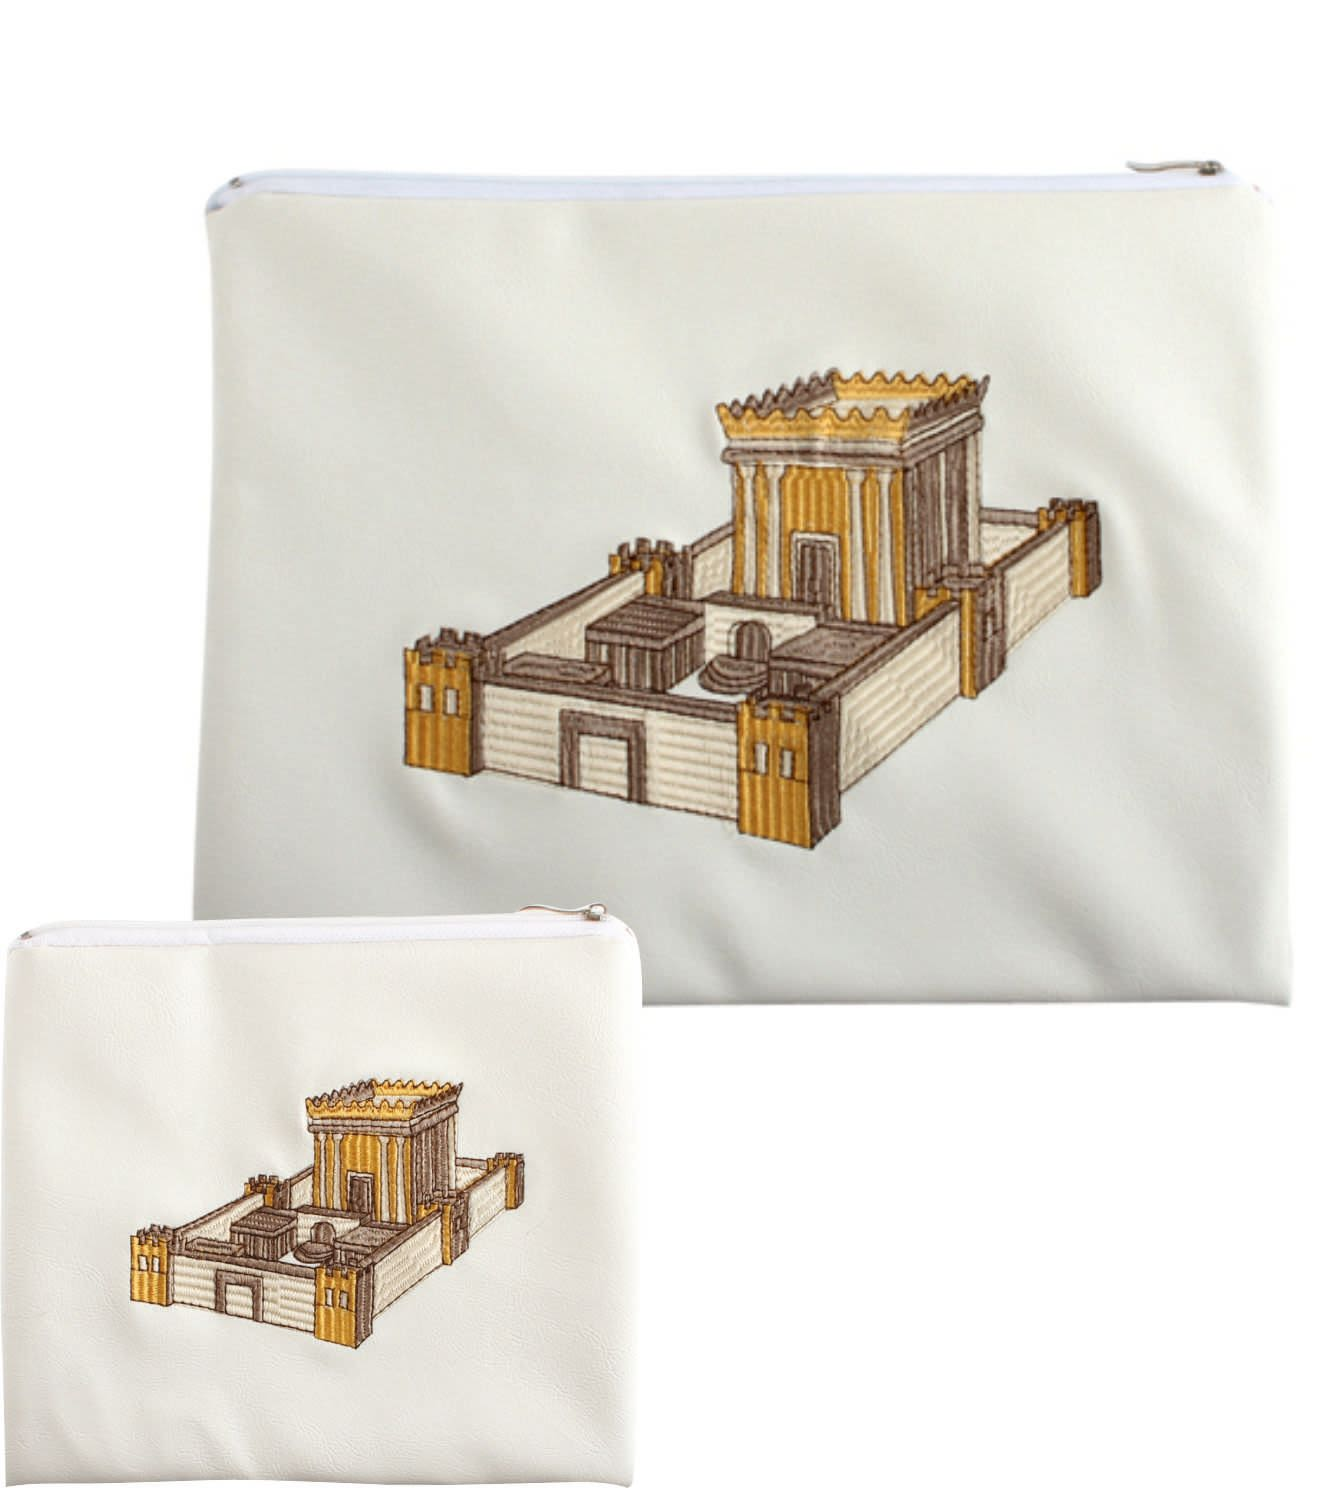 Talit and Tefillin Bag of White Color with Embroidered Beit HaMikdash